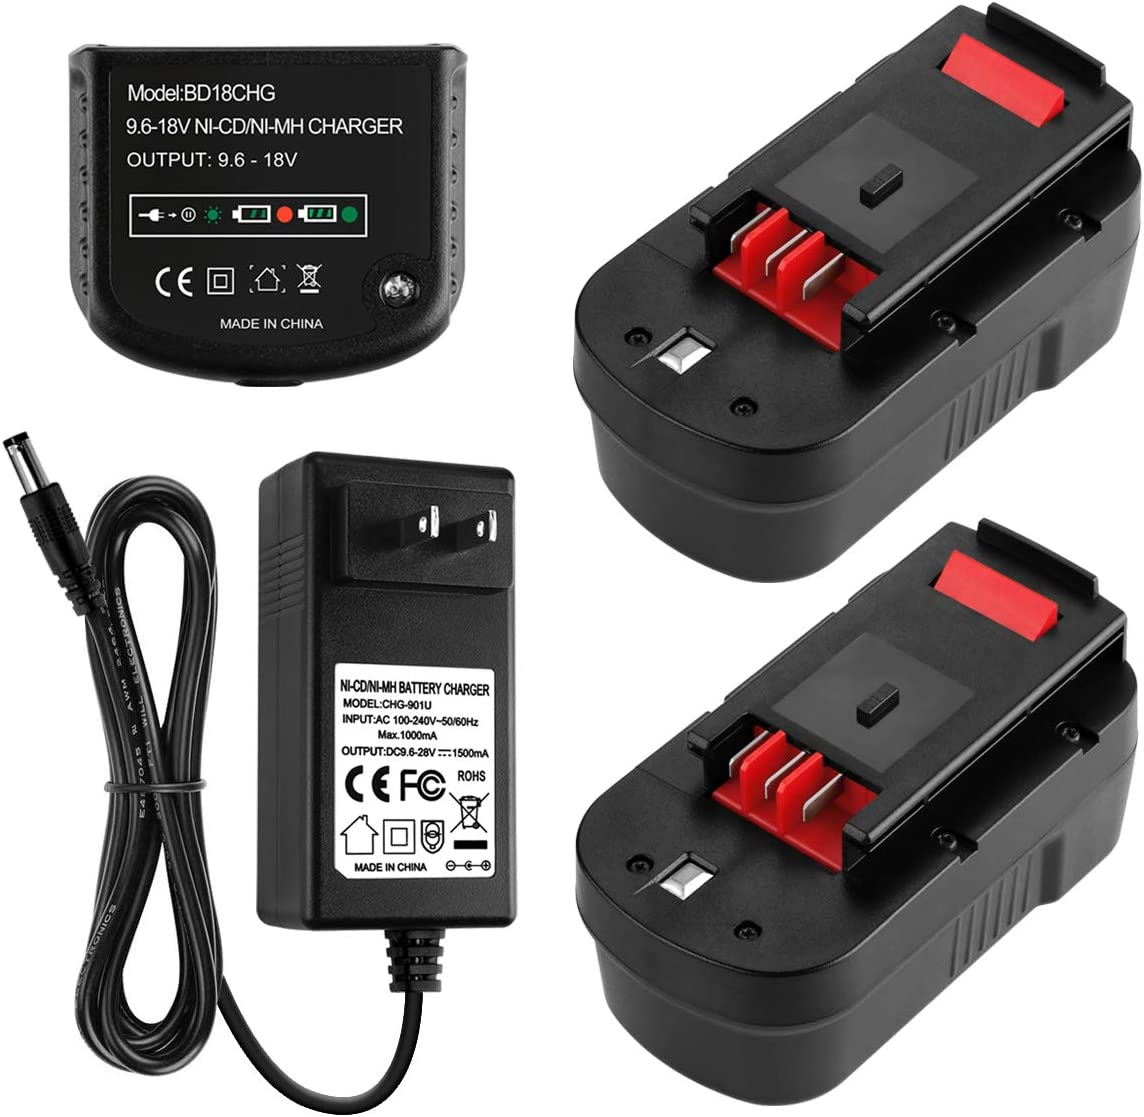 Energup 2Pack 3.5Ah HPB18 Replacement Black and Decker 18V Battery 244760-00 A1718 FS18FL FSB18 Firestorm + 90571729-01 Multi-Volt 1.5Ah Output Battery Charger for Black Decker 9.6-18V Batteries